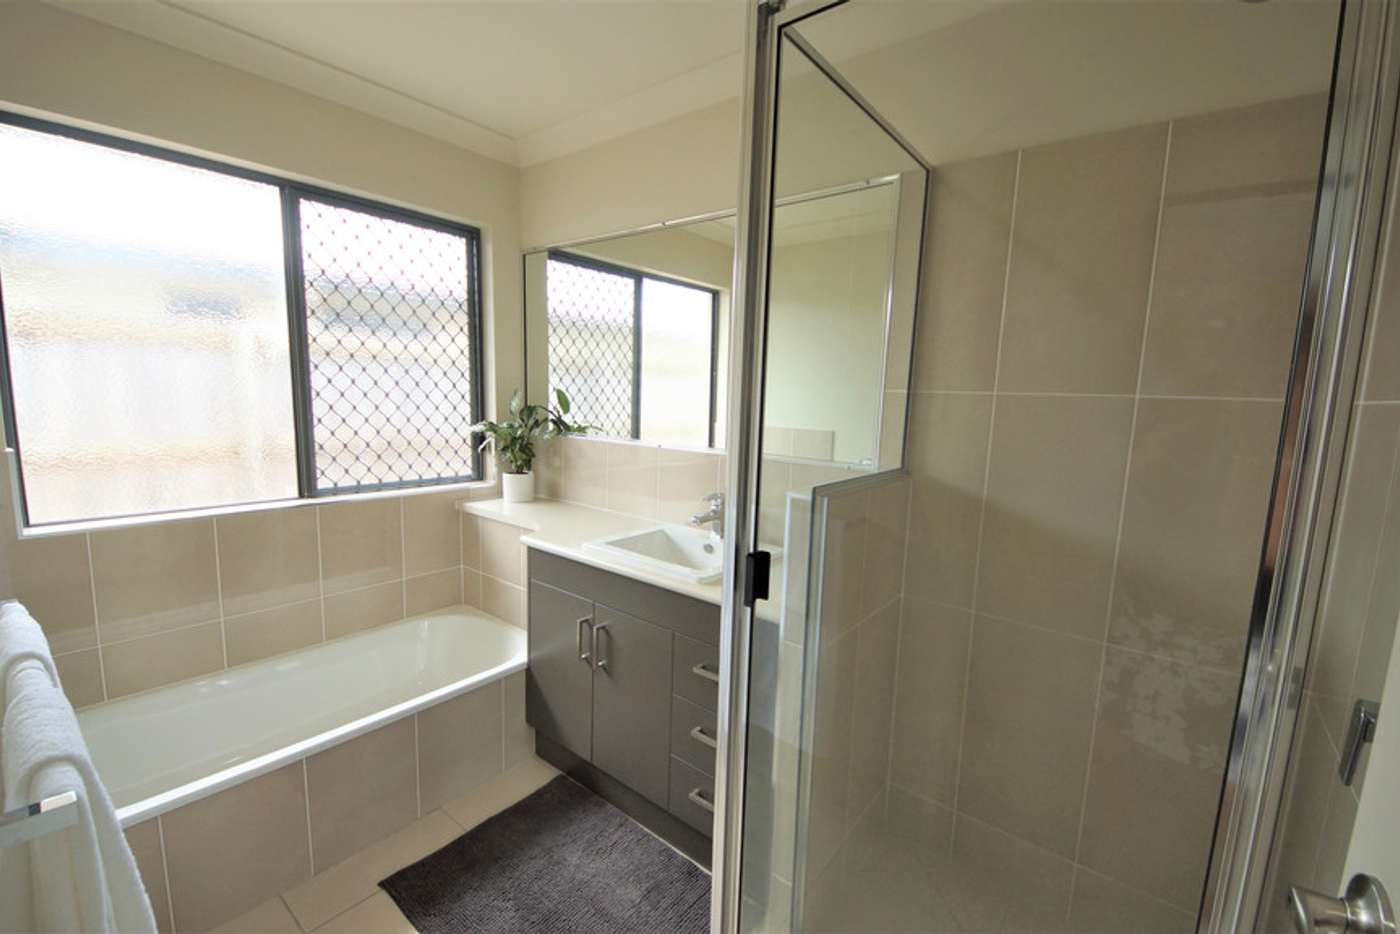 Seventh view of Homely house listing, 41 Kerrisdale Crescent, Beaconsfield QLD 4740